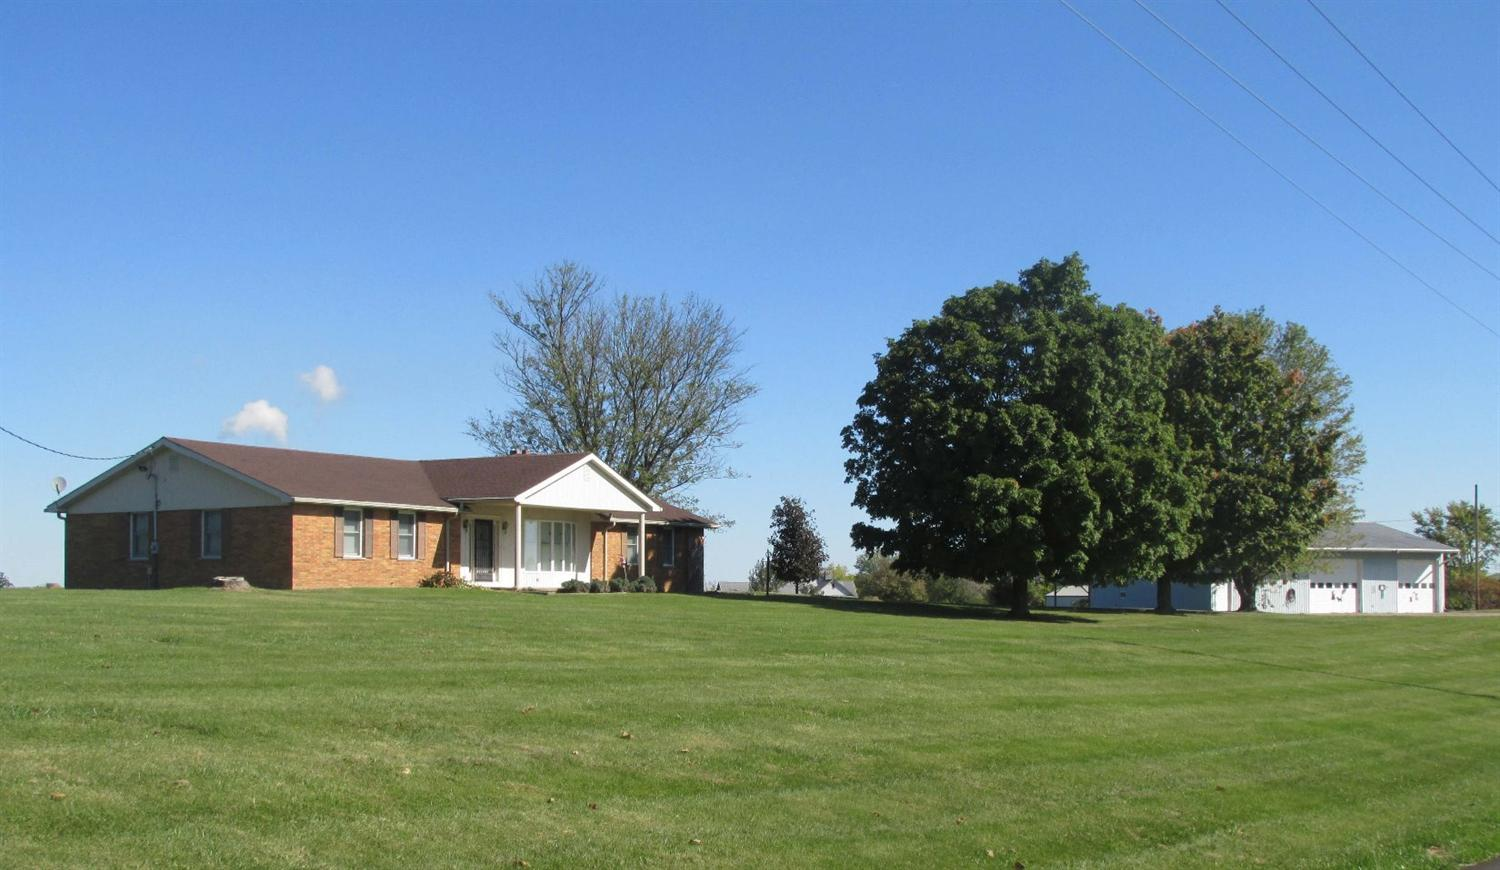 Photo 1 for 10495 Highway 159 N Butler, KY 41006